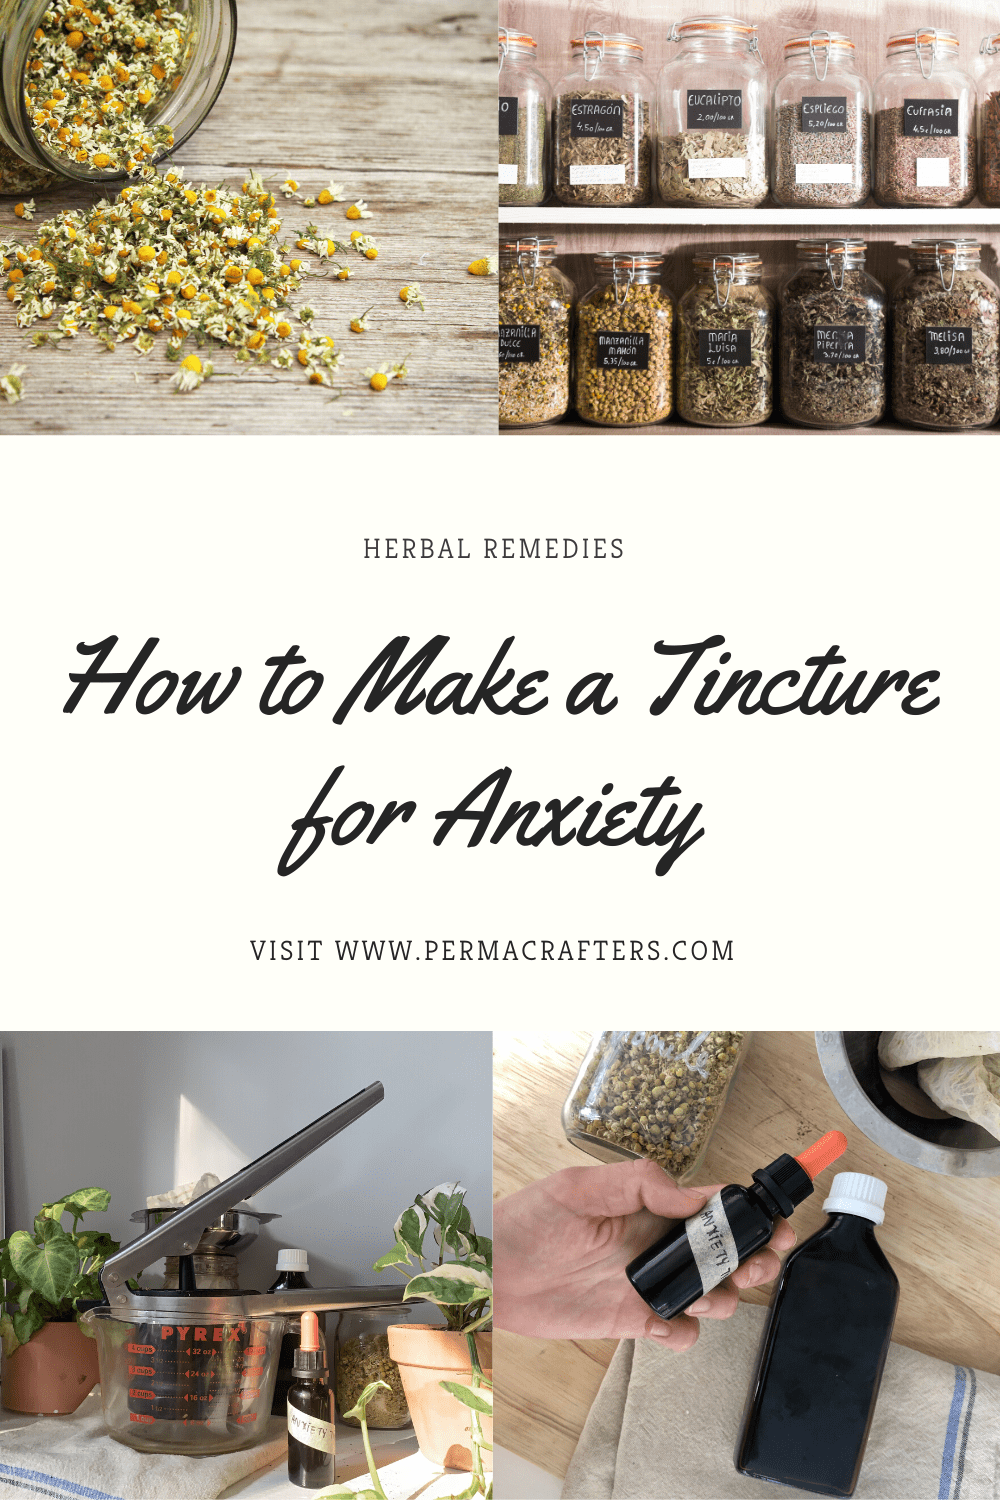 How to Make a Tincture for Anxiety